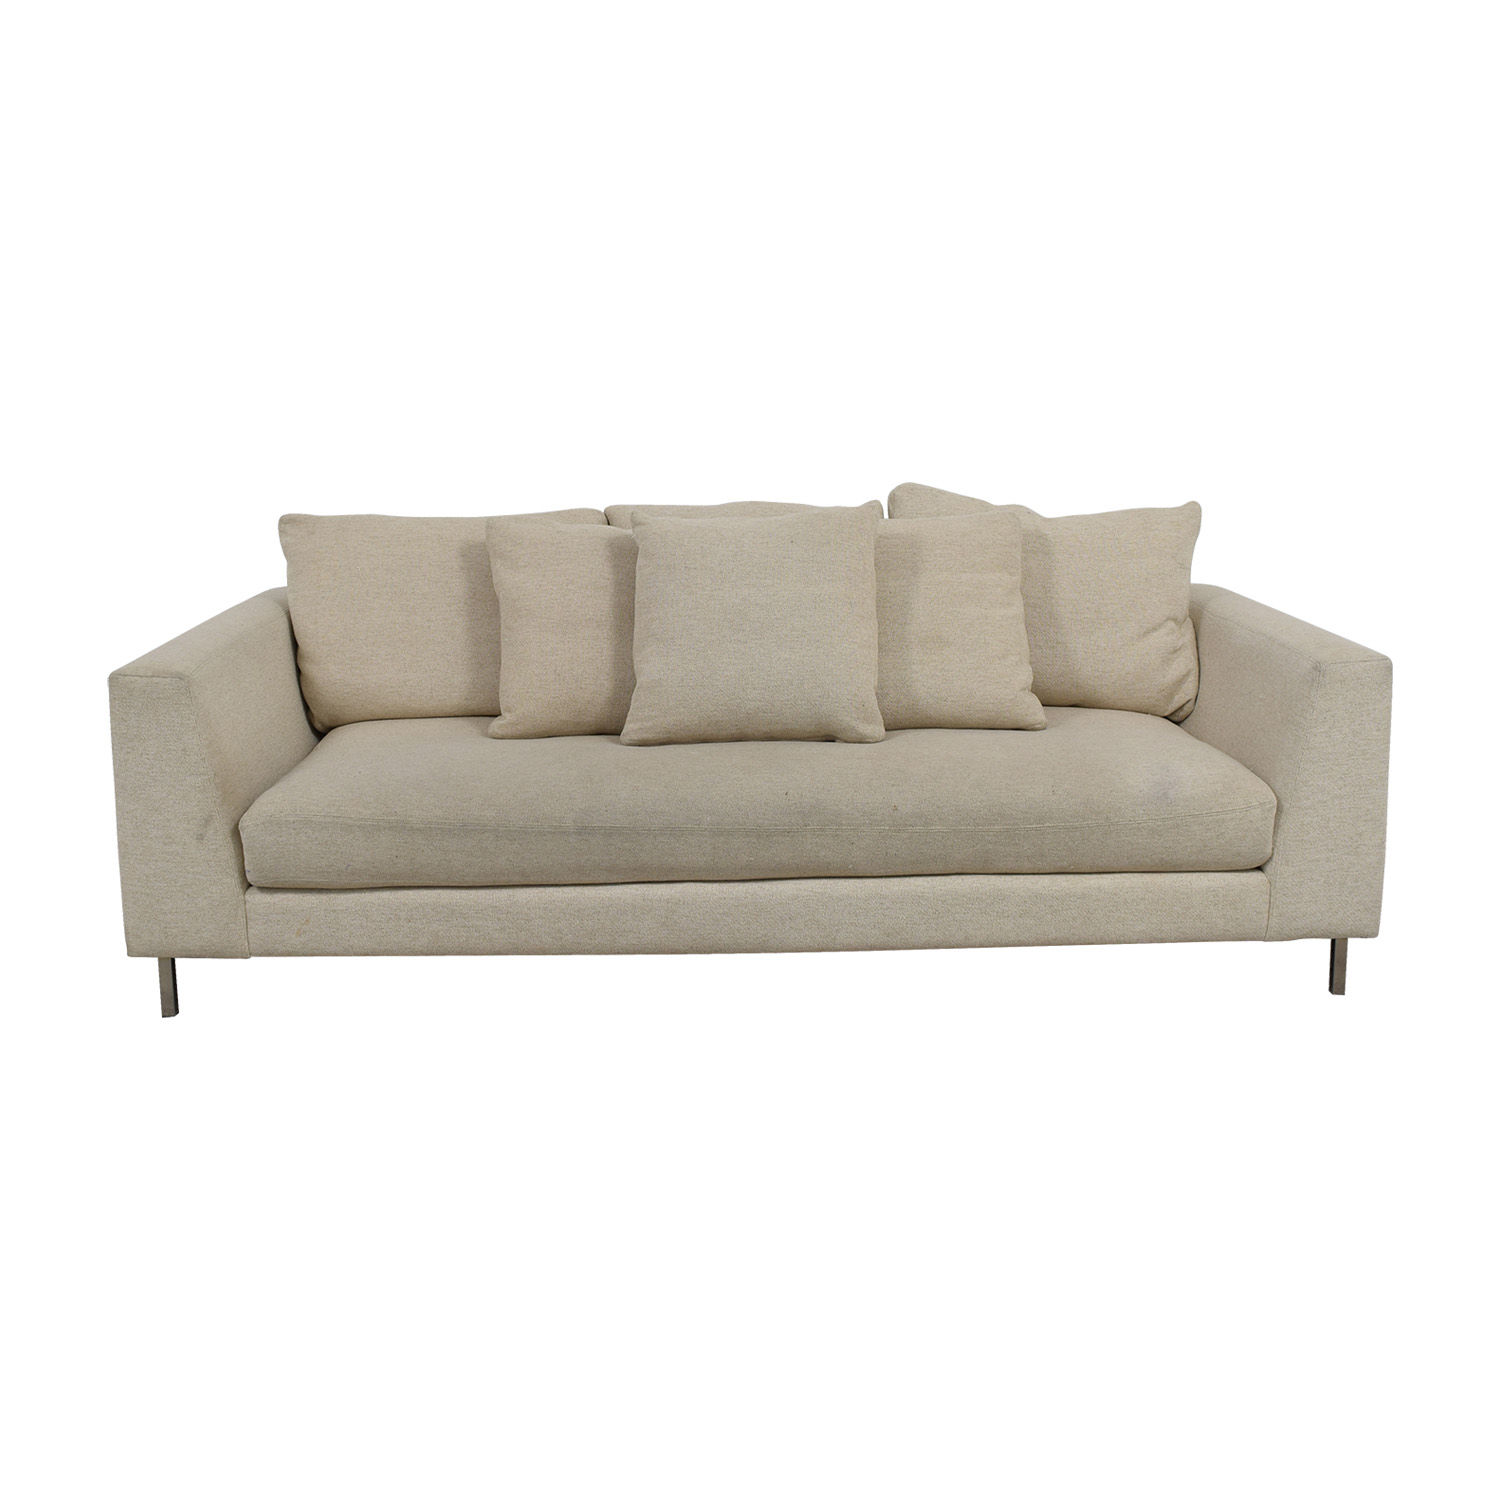 Room & Board Room & Board Hayes Beige Single Cushion Sofa coupon